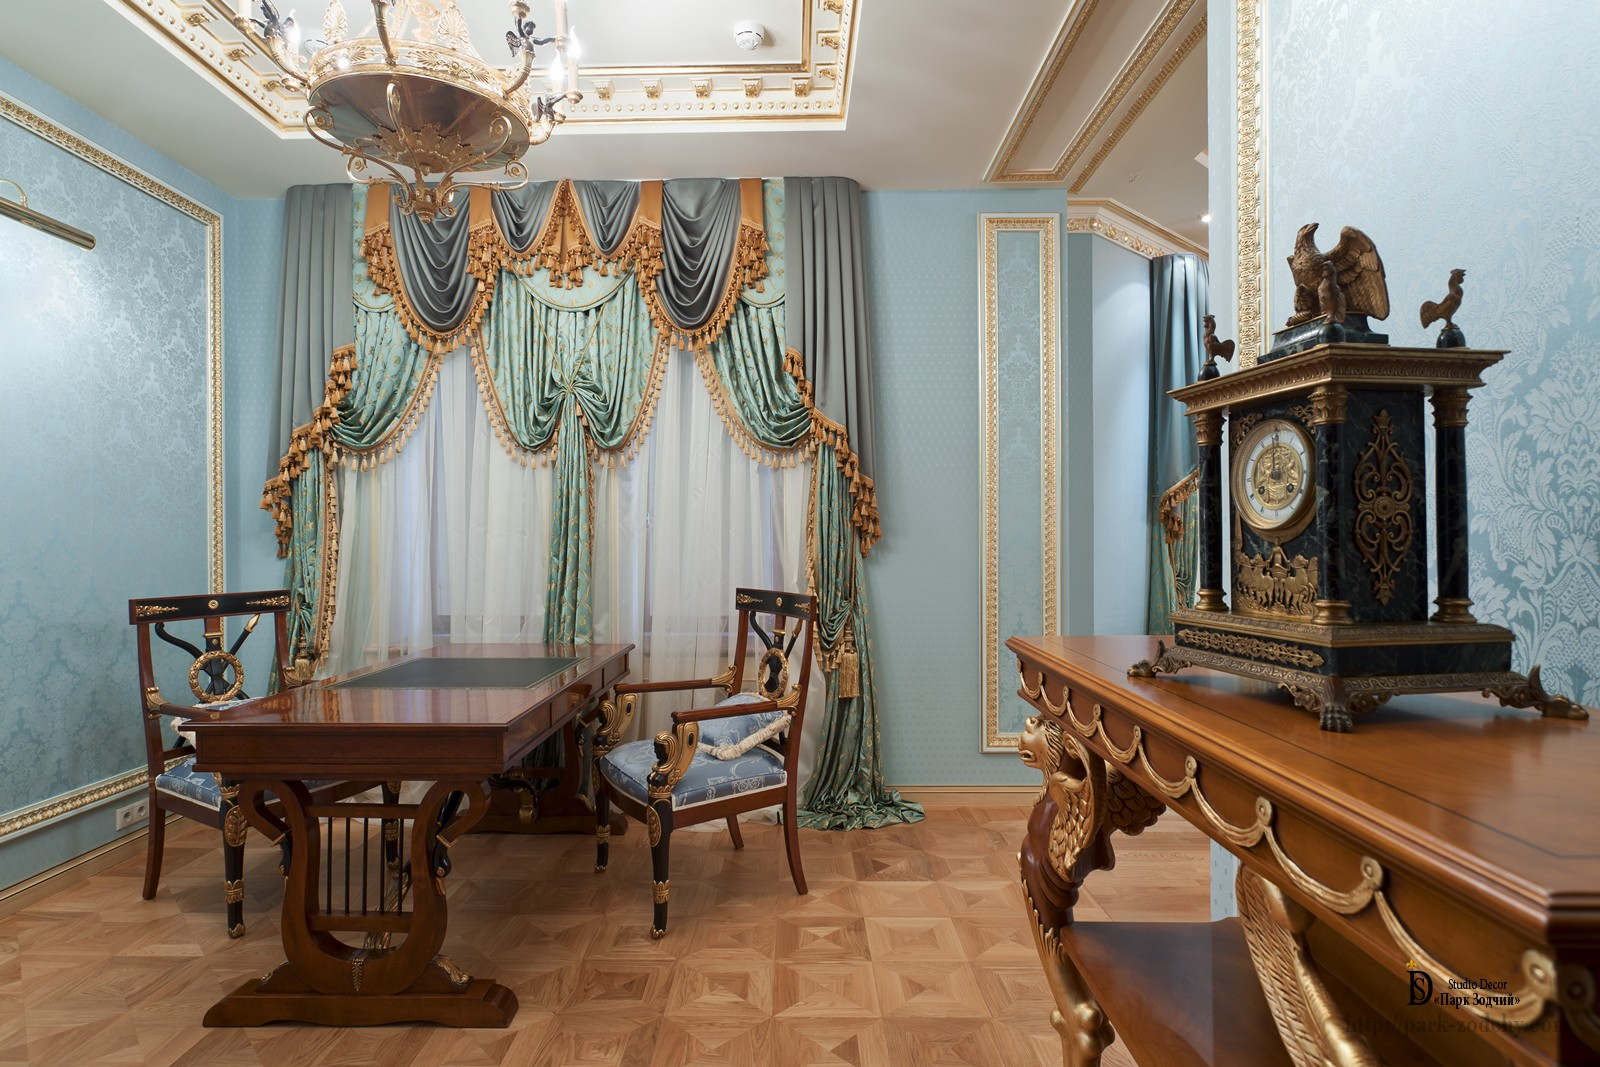 The Cabinet in the Empire style with distinctive furnishings